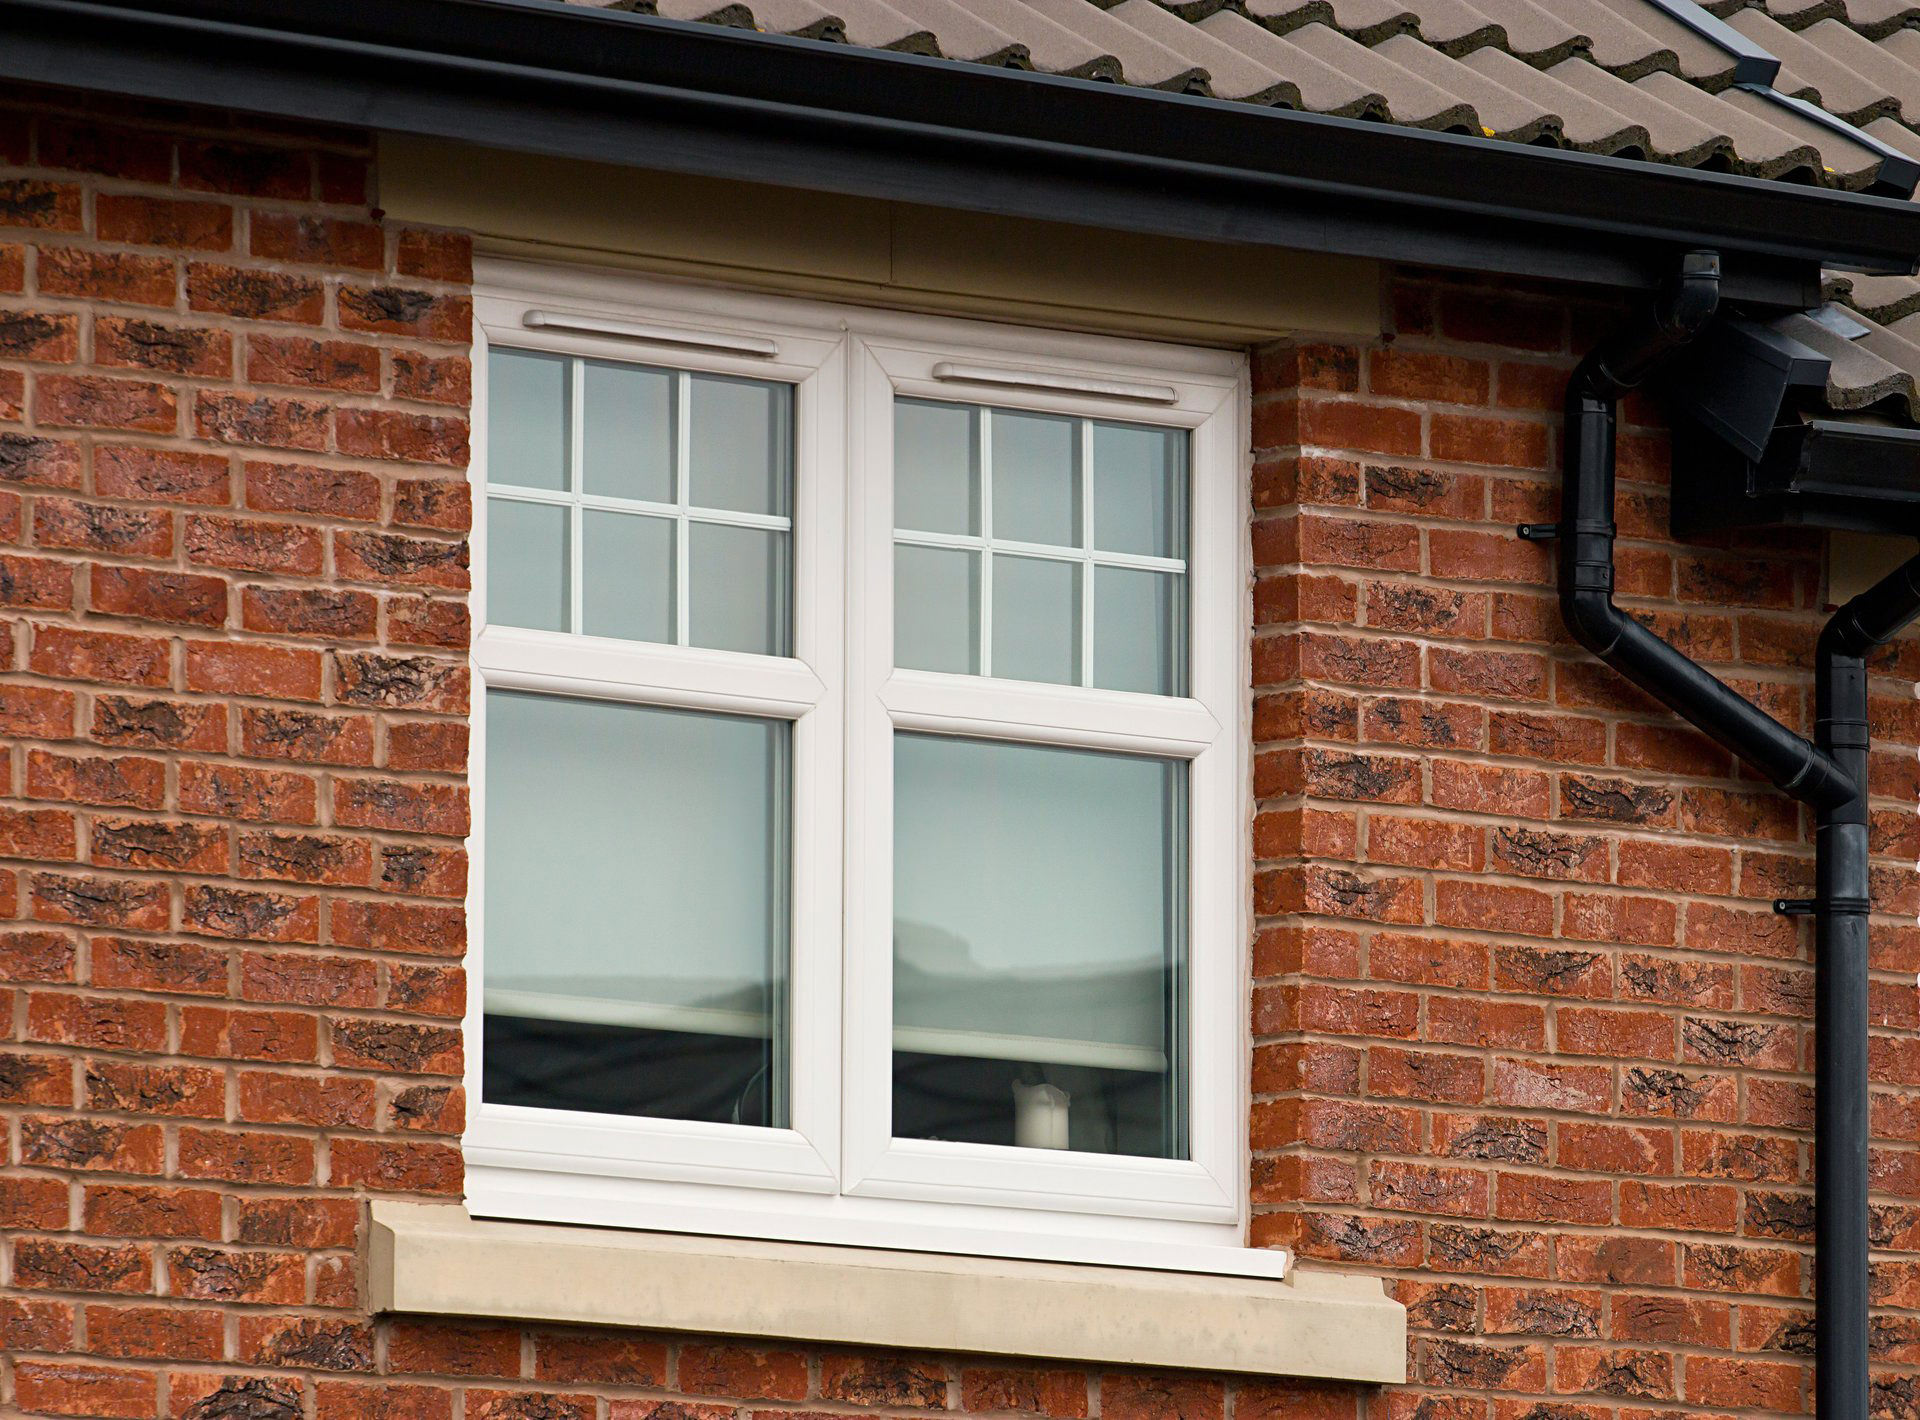 Upvc French Casement Windows Hertford French Windows Prices